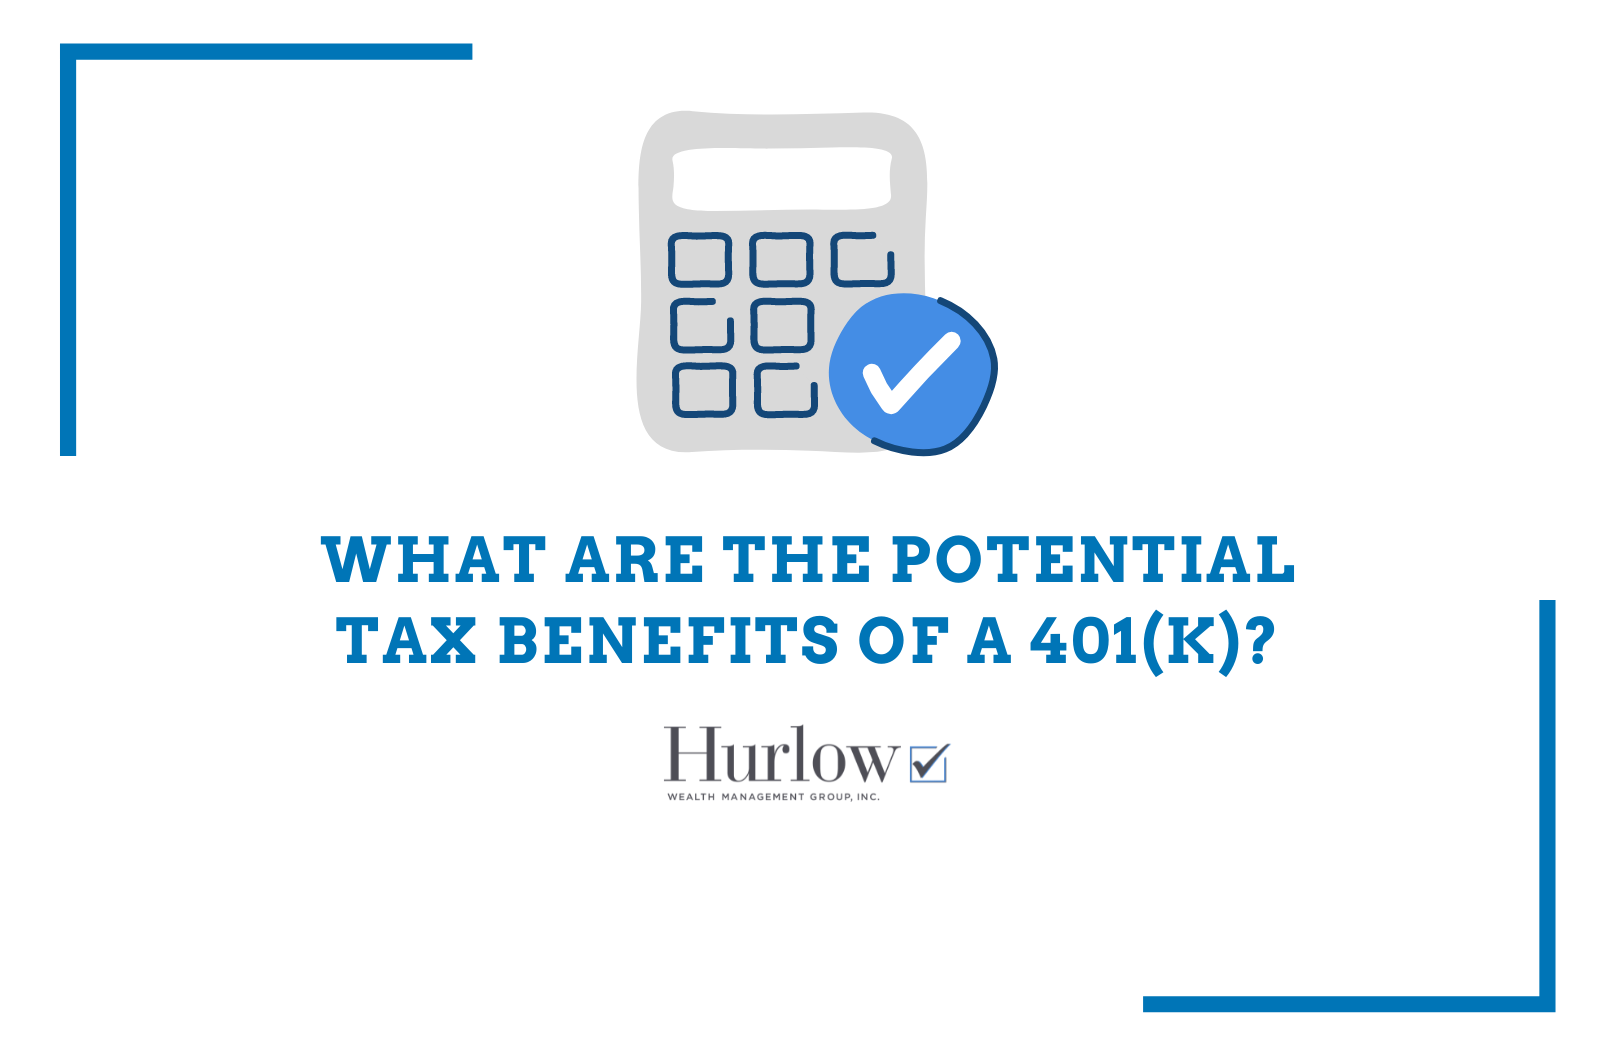 Opening a 401(k) provides tax benefits to the employer and employees Thumbnail